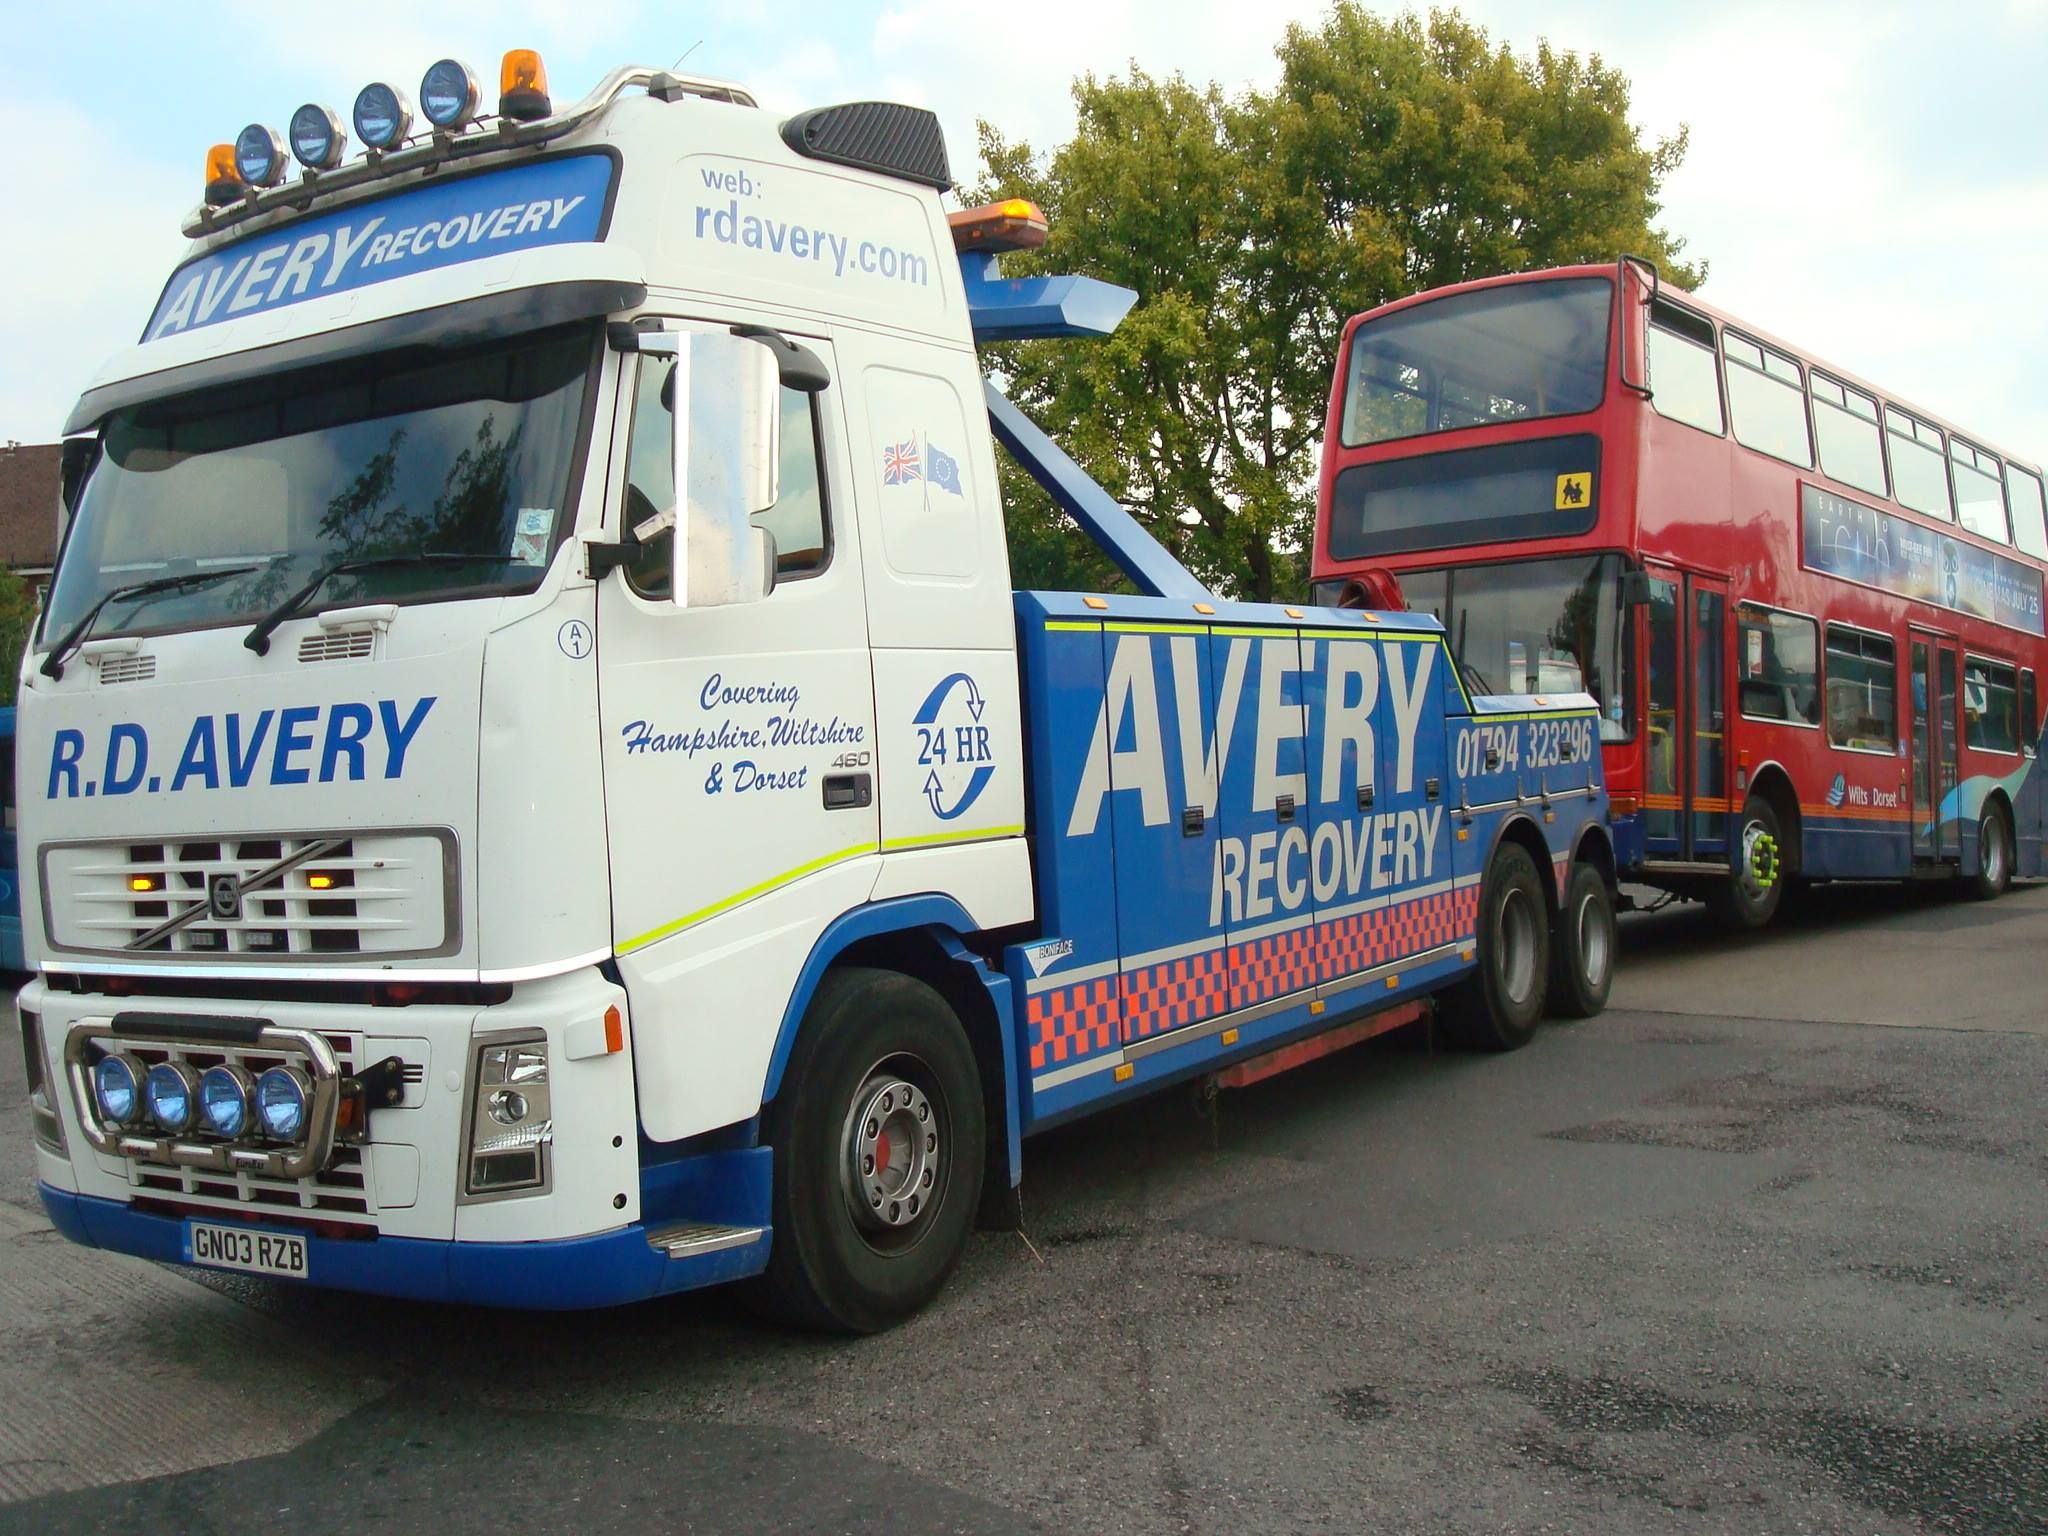 Bus & Coach Recovery - We service some of the south coast's largest bus and coach operators. We efficiently take expert care of passenger vehicles to ensure our customers have their bus or coach operational again in the quickest possible timeframe.